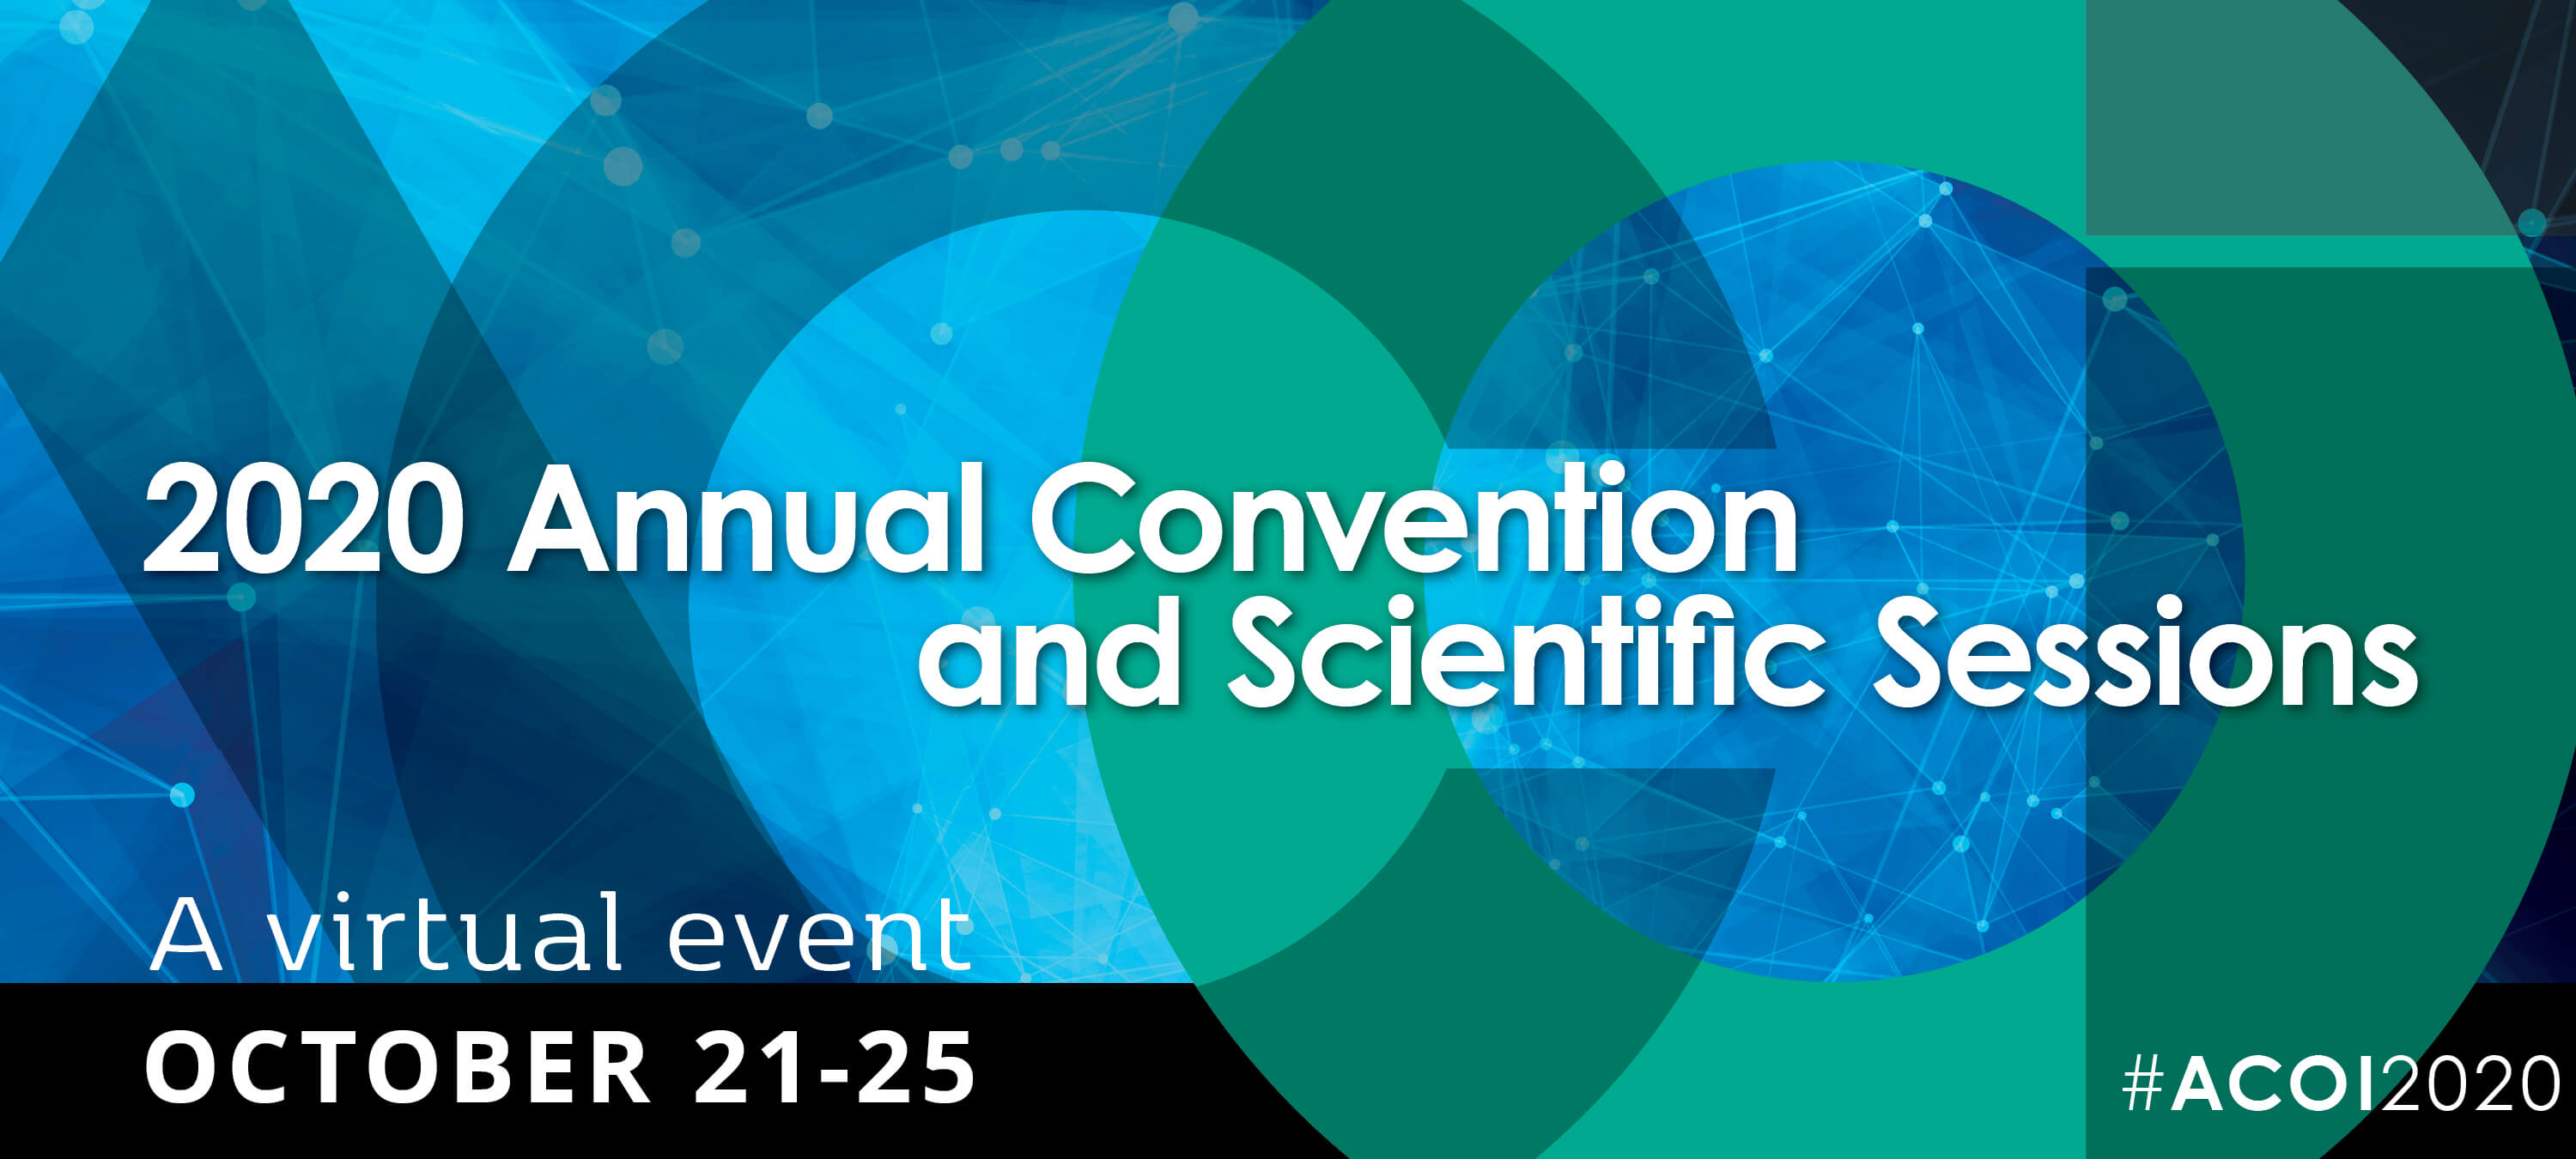 ACOI 2020 Annual Convention and Scientific Sessions